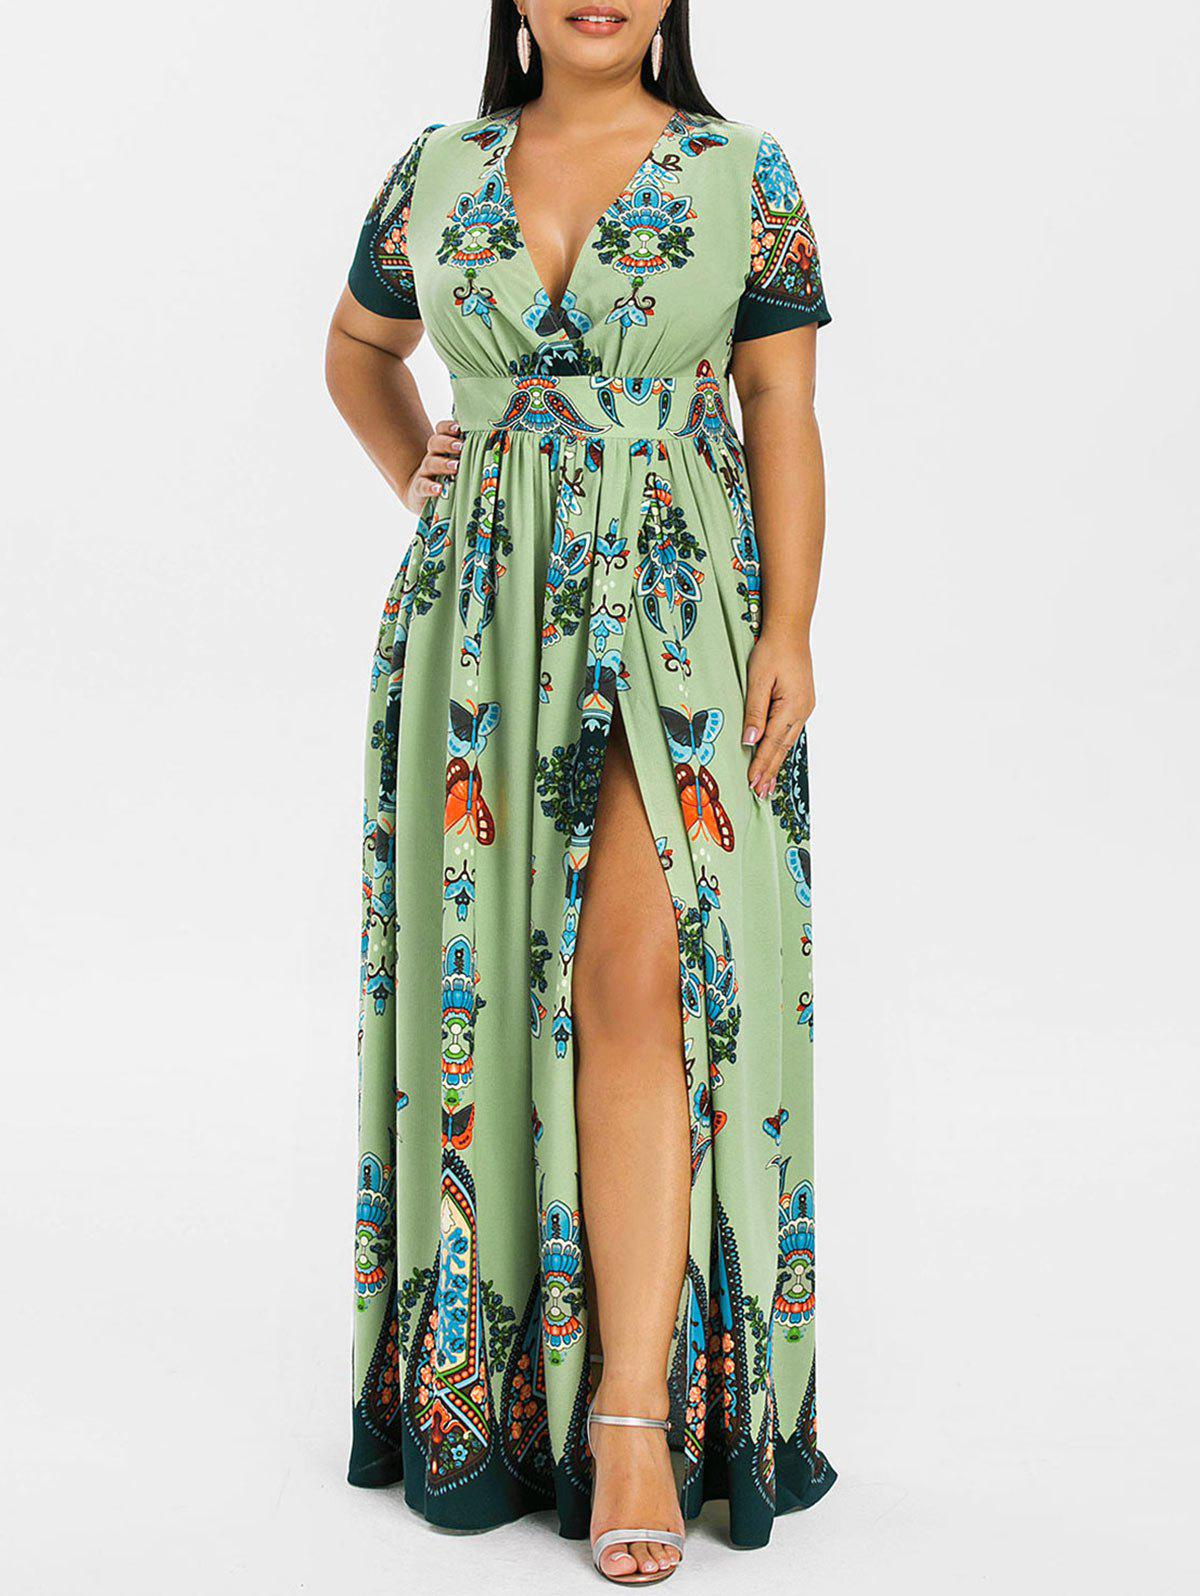 397a20dcd5 37% OFF] Plus Size High Waist Maxi Slit Dress | Rosegal